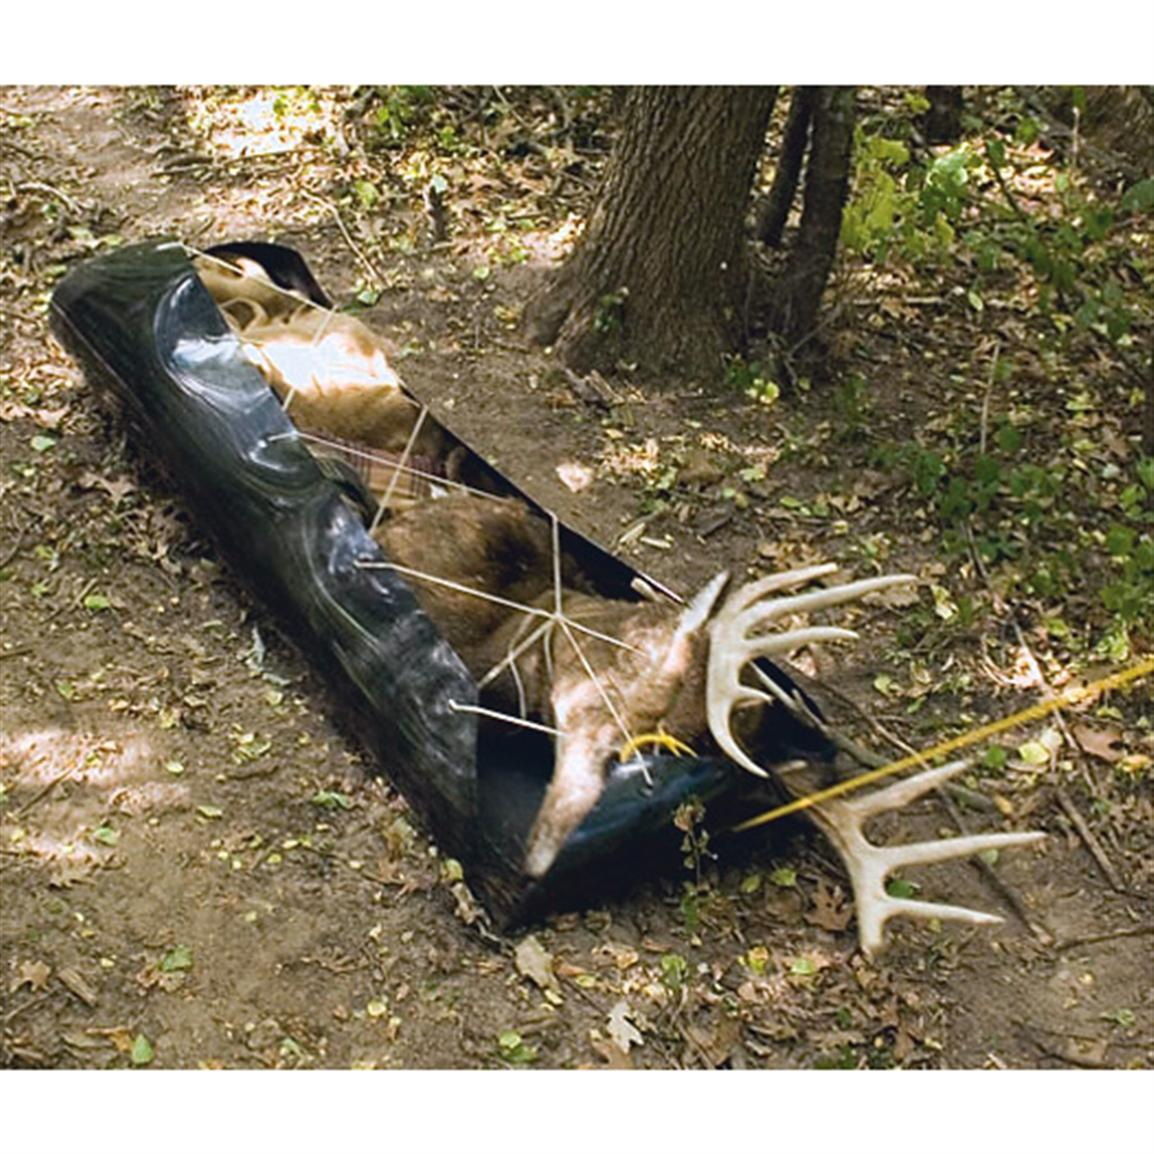 Harvested deer tied on to a sled